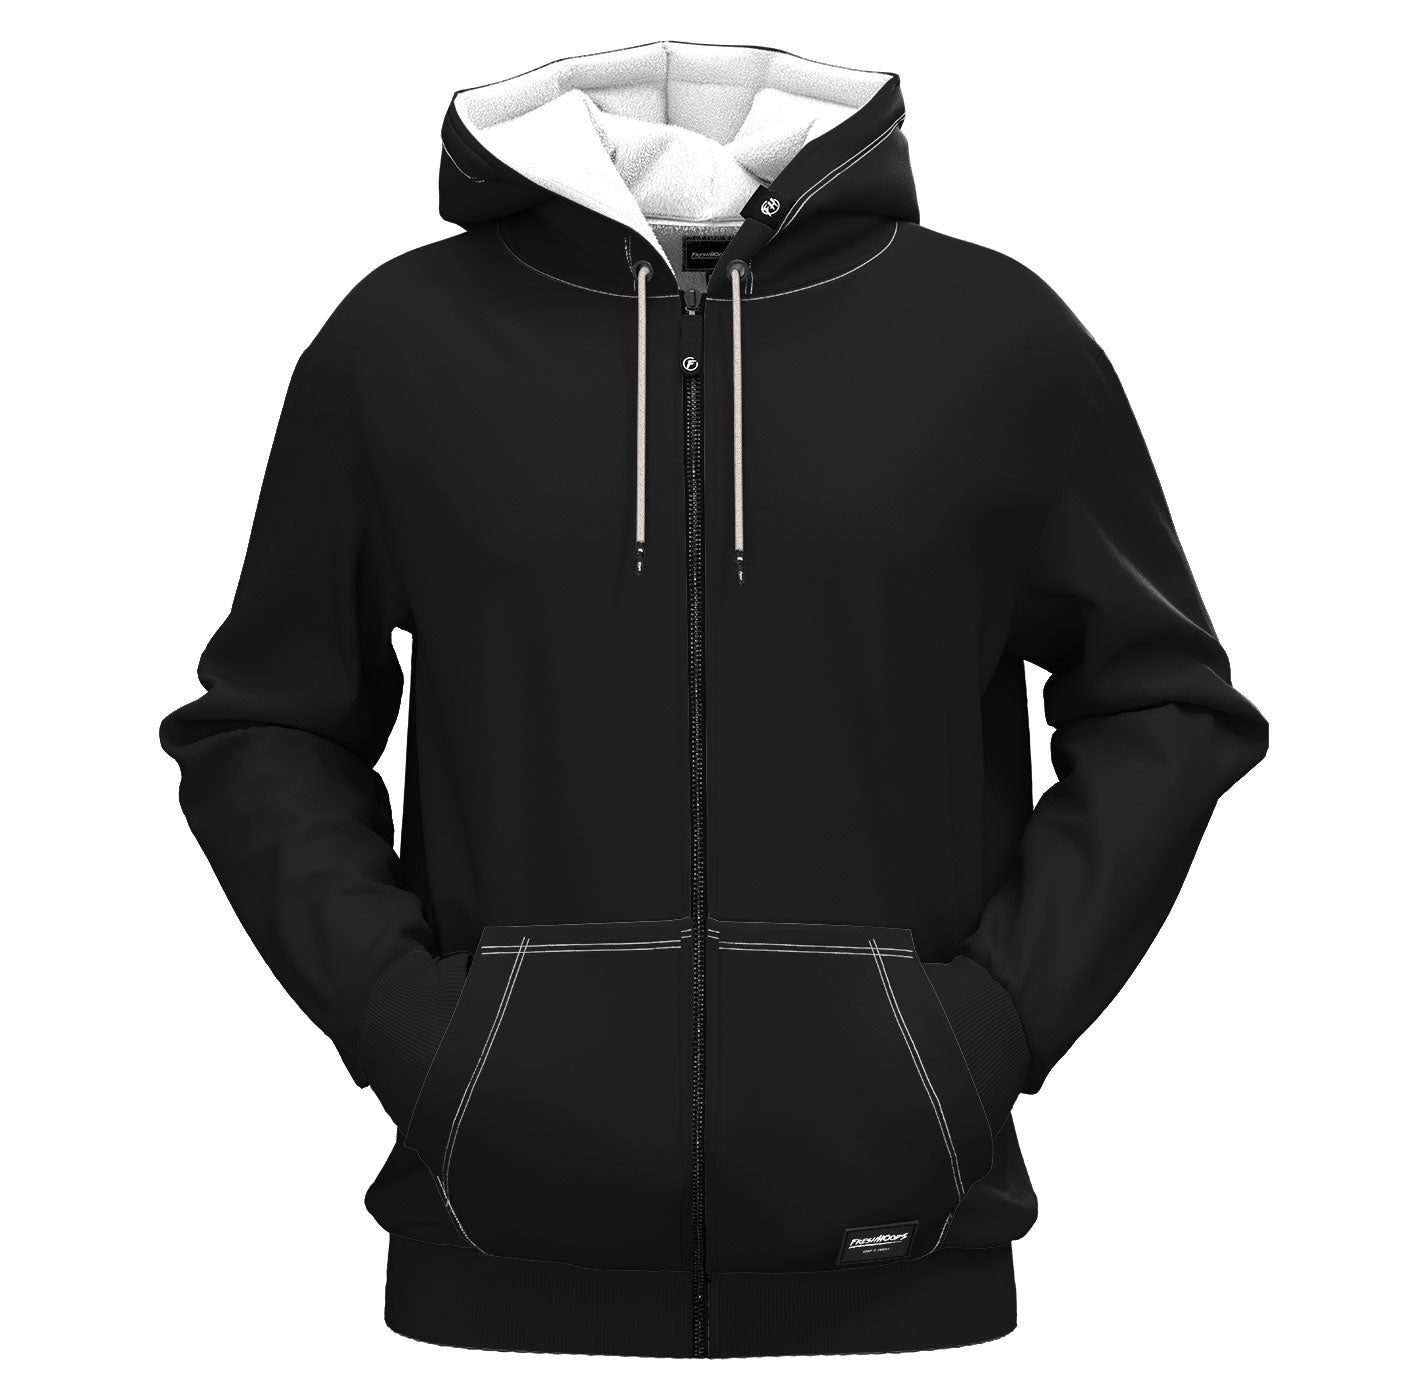 Protect Yourself Zip Up Hoodie